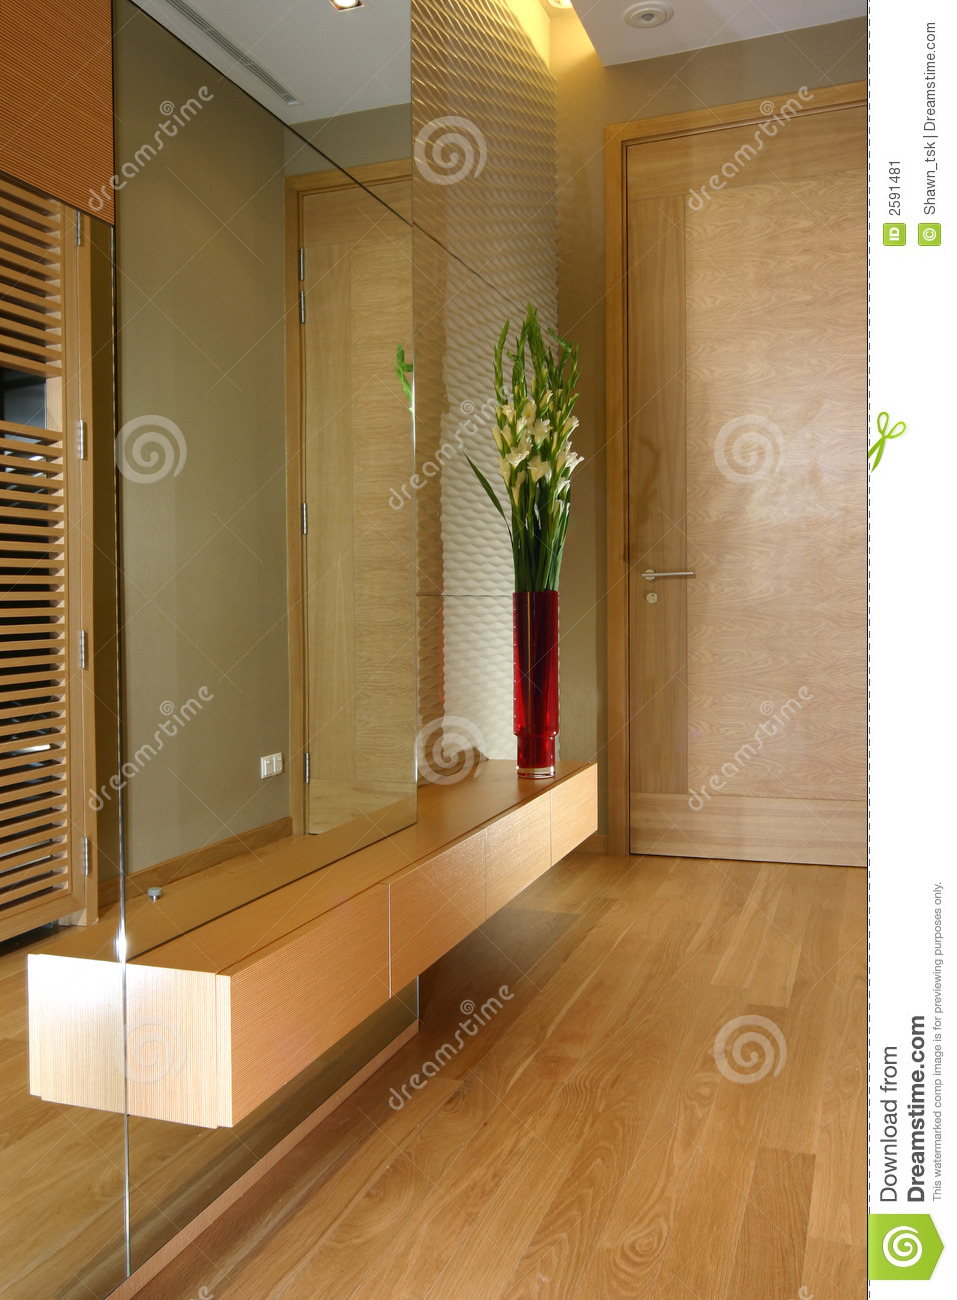 Interior Design Foyer Stock Image Image Of Vanity Wall